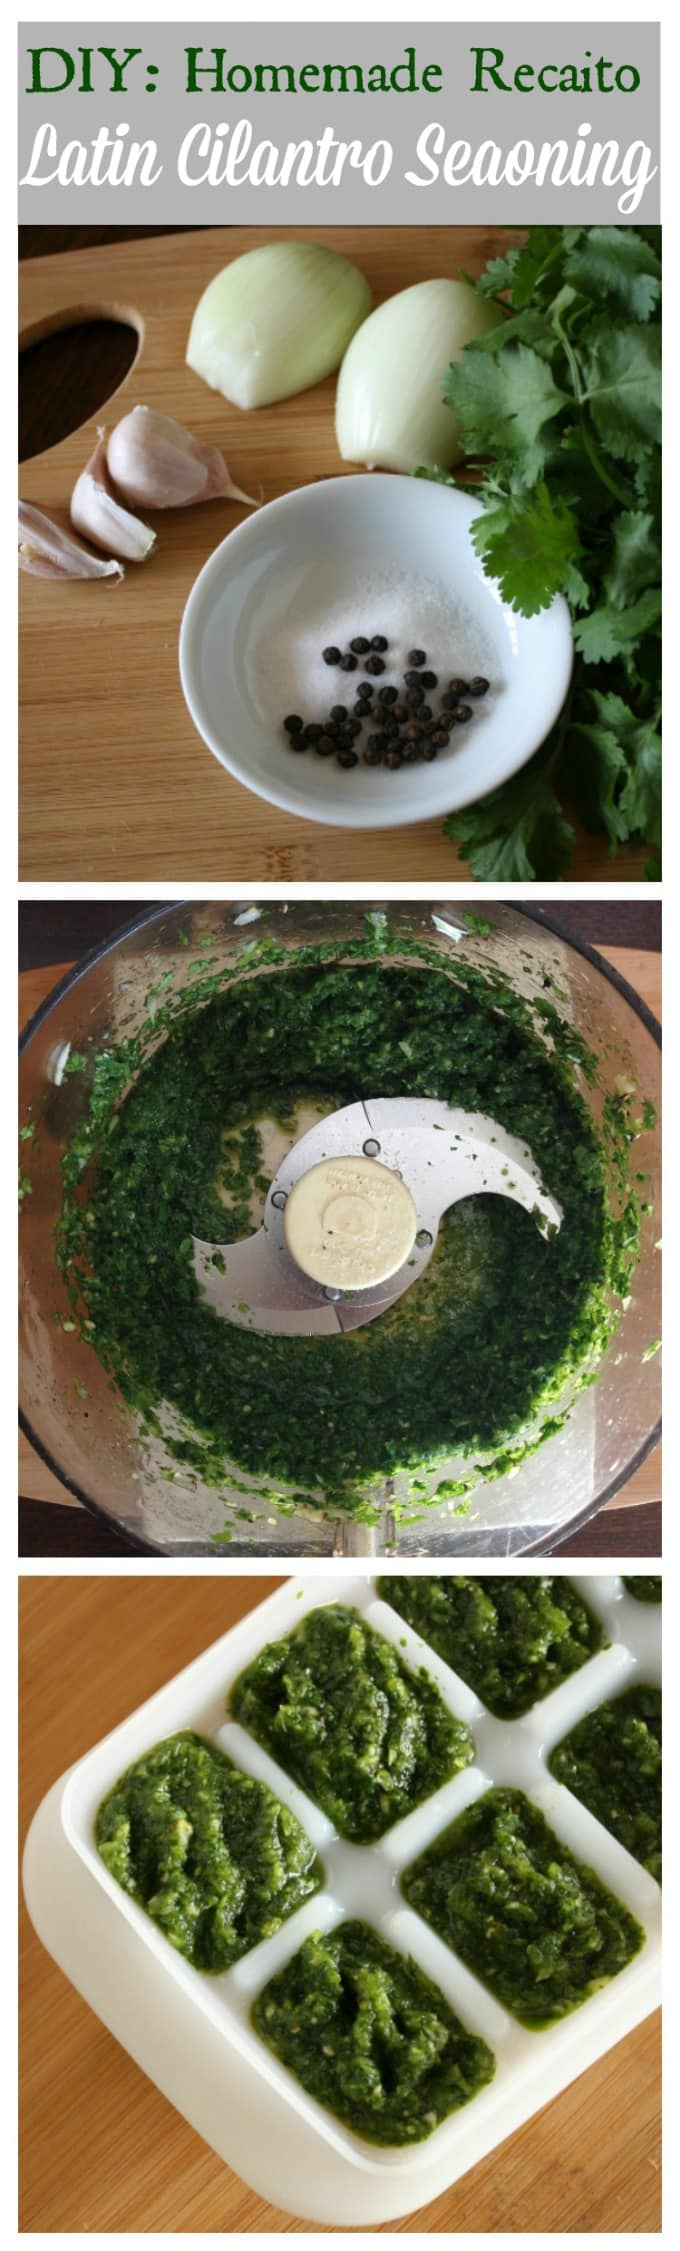 Home made recaito recipe for Latin American cilantro base dishes and seasoning | ethnicspoon.com